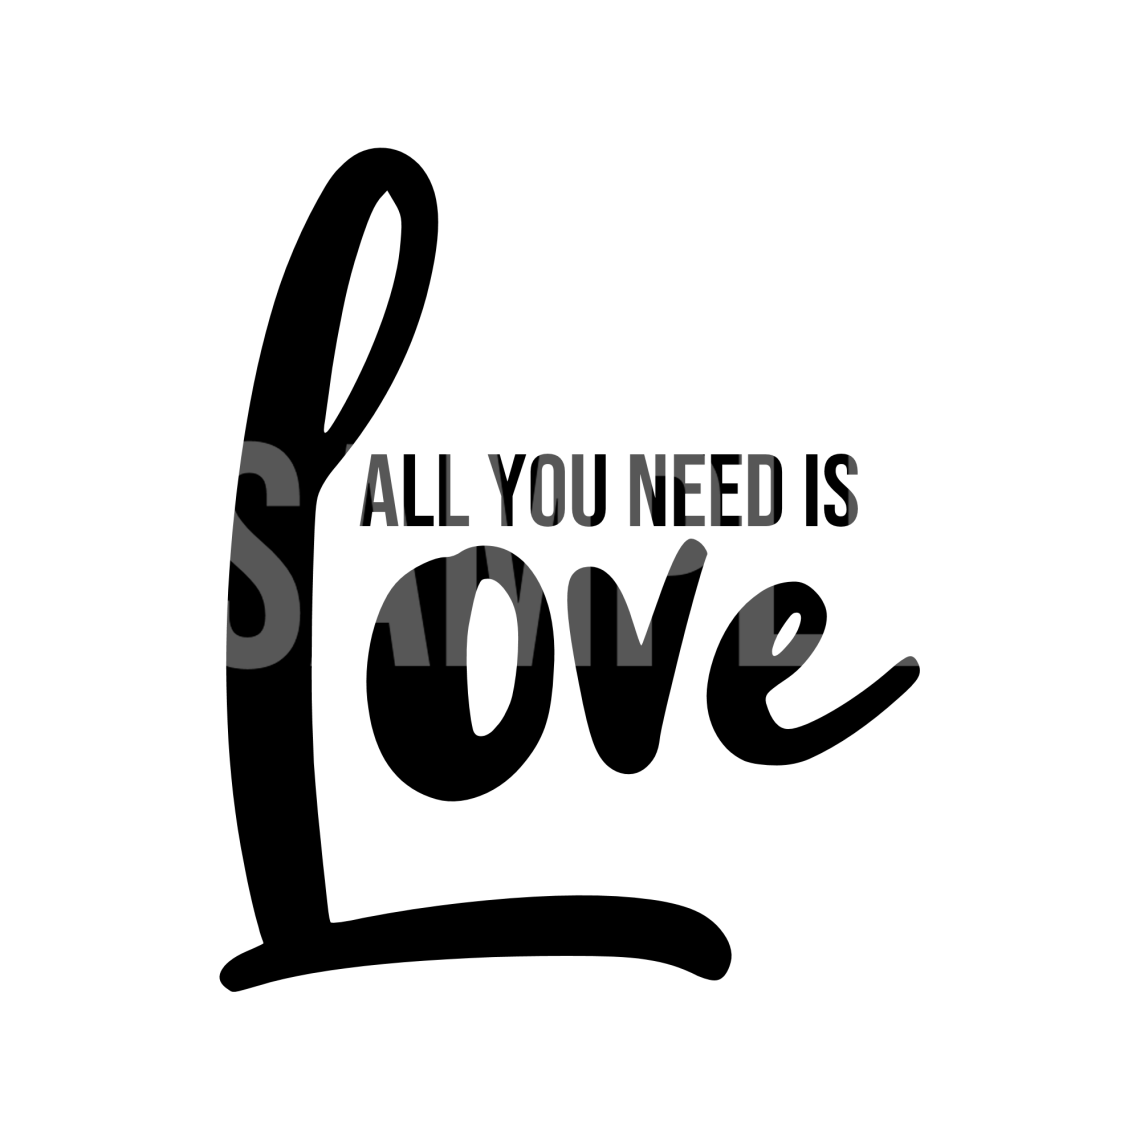 Download All You Need Is Love SVG and PNG